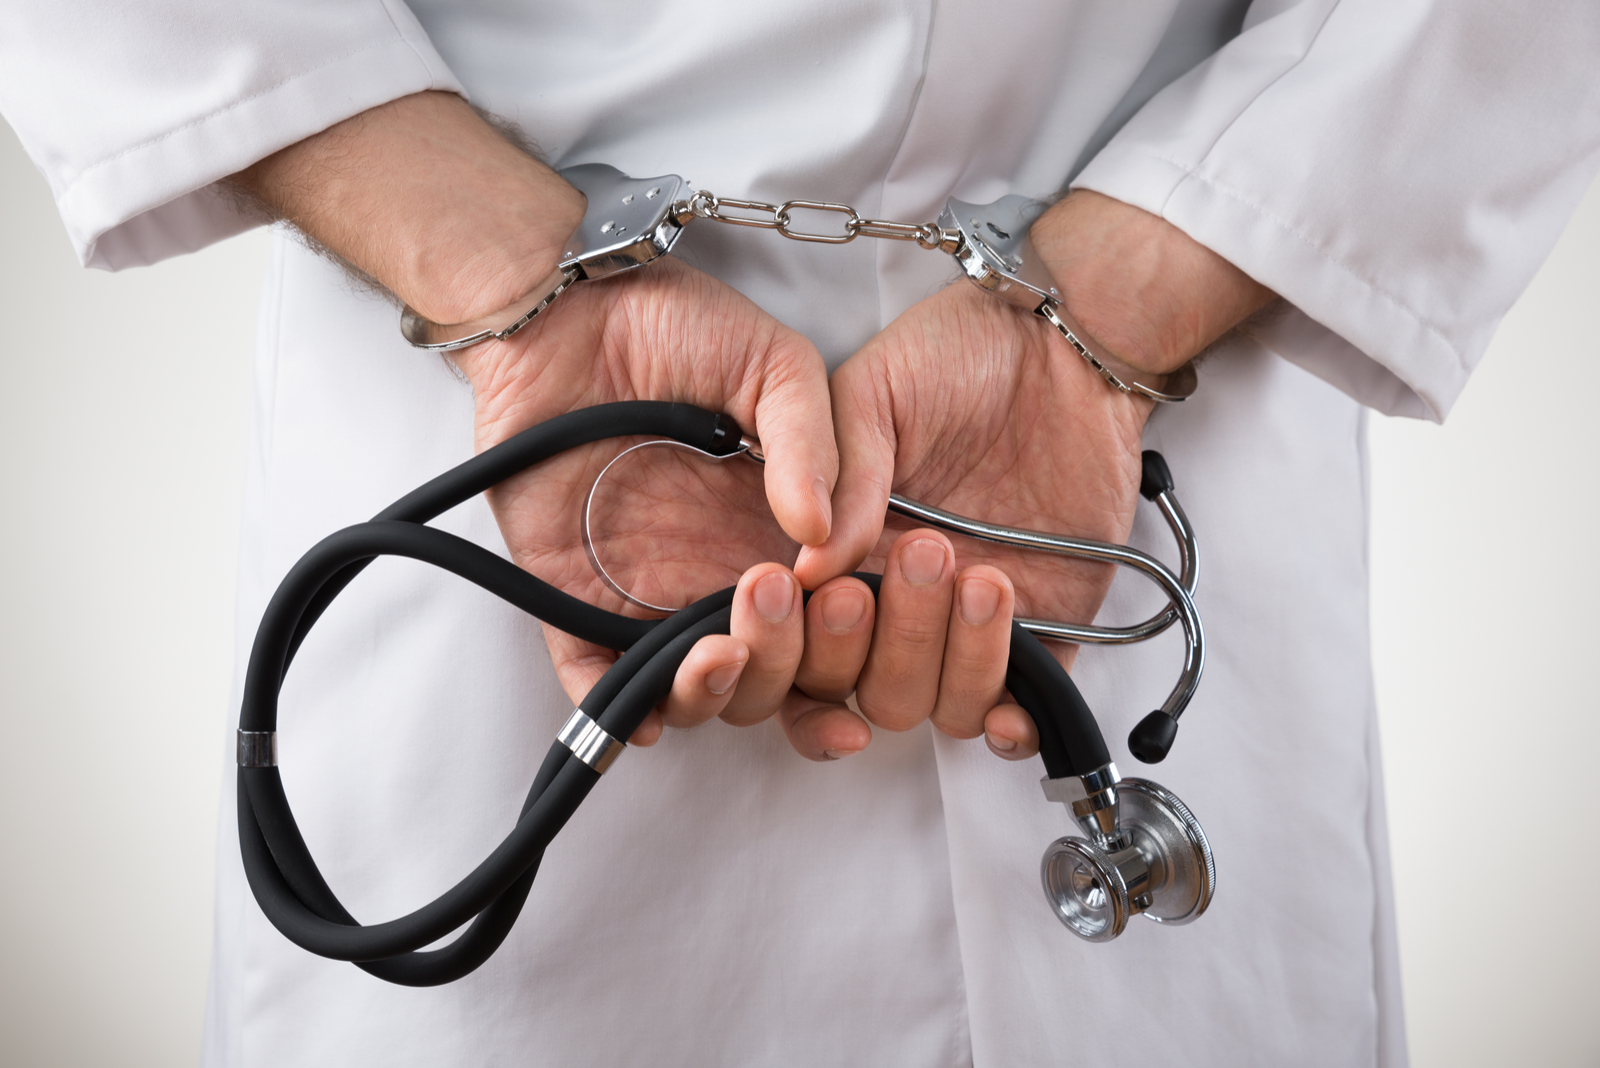 Medicare Fraud and Abuse: What is it exactly?